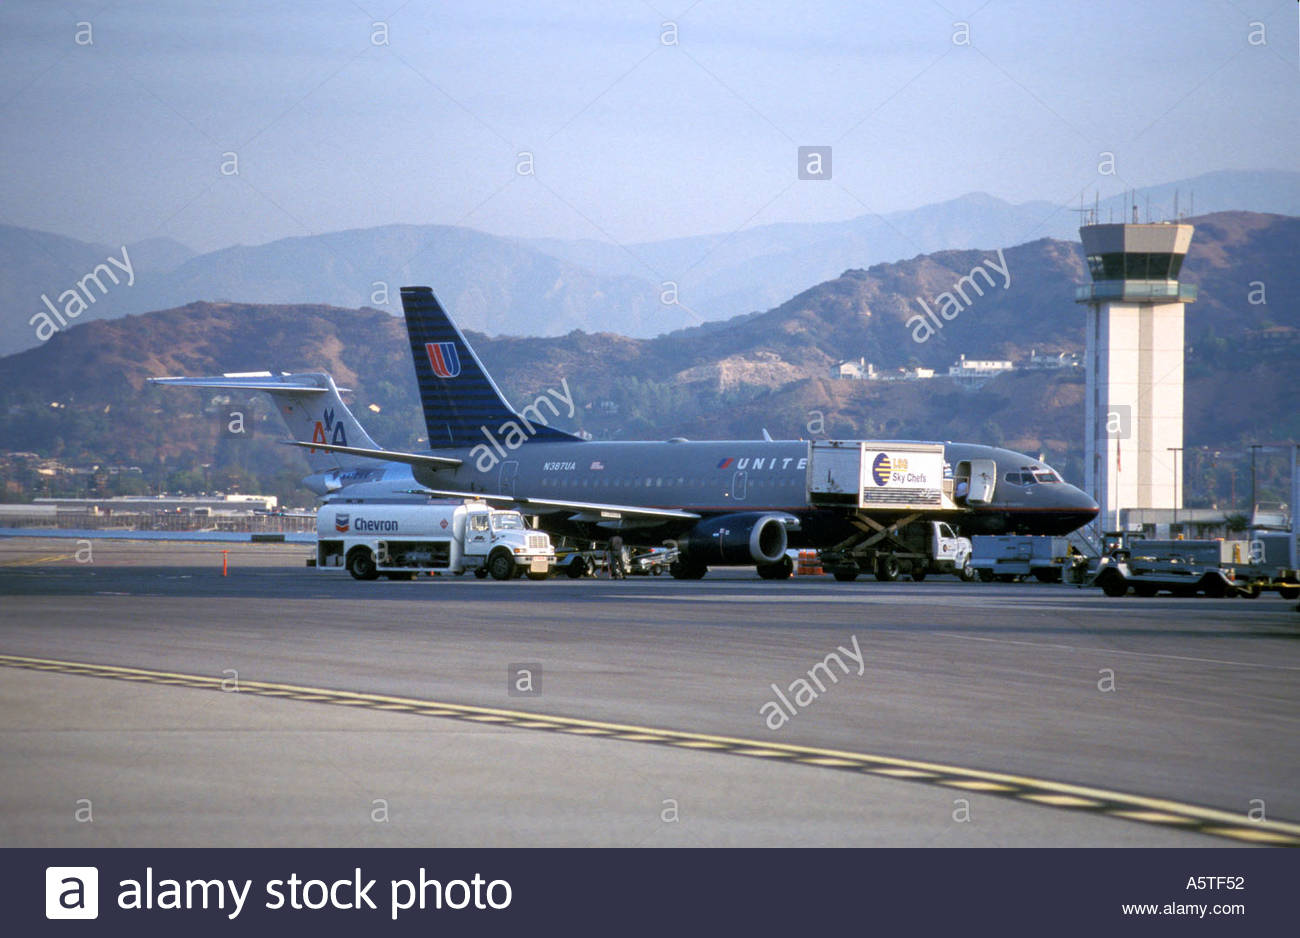 Commercial airliner being serviced at terminal. - Stock Image